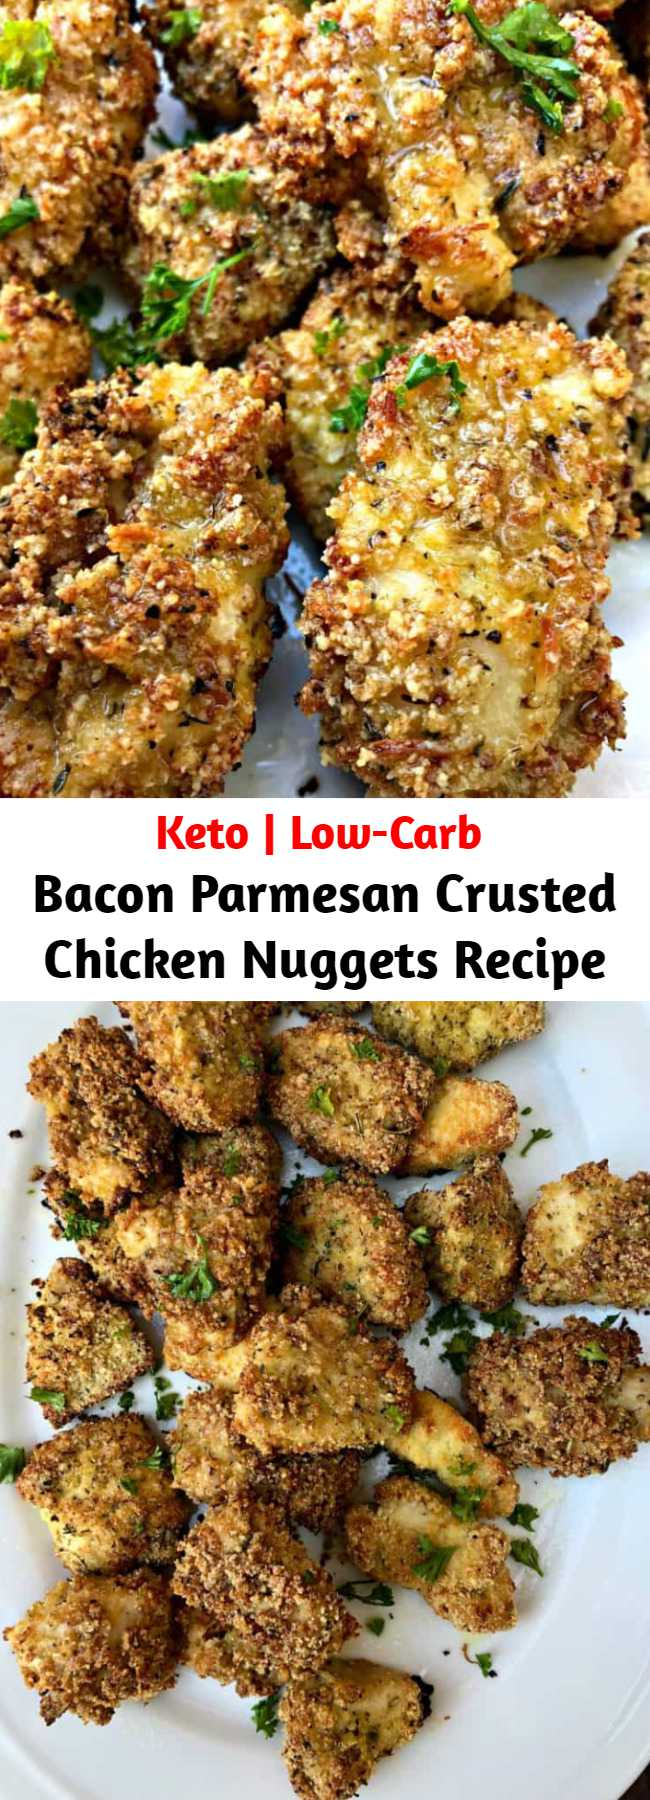 Bacon Parmesan Crusted Chicken Nuggets Recipe - Keto Low-Carb Bacon Parmesan Crusted Chicken Nuggets with Avocado Ranch dipping sauce is a quick and easy recipe perfect for tenders, strips, or chicken fingers. This dish is ketogenic, great for ketosis, family, and kid-friendly with only 3 grams of carbs per serving! Serve them baked or fried. #KetoRecipes #KetoDiet #KetoChickenNuggets